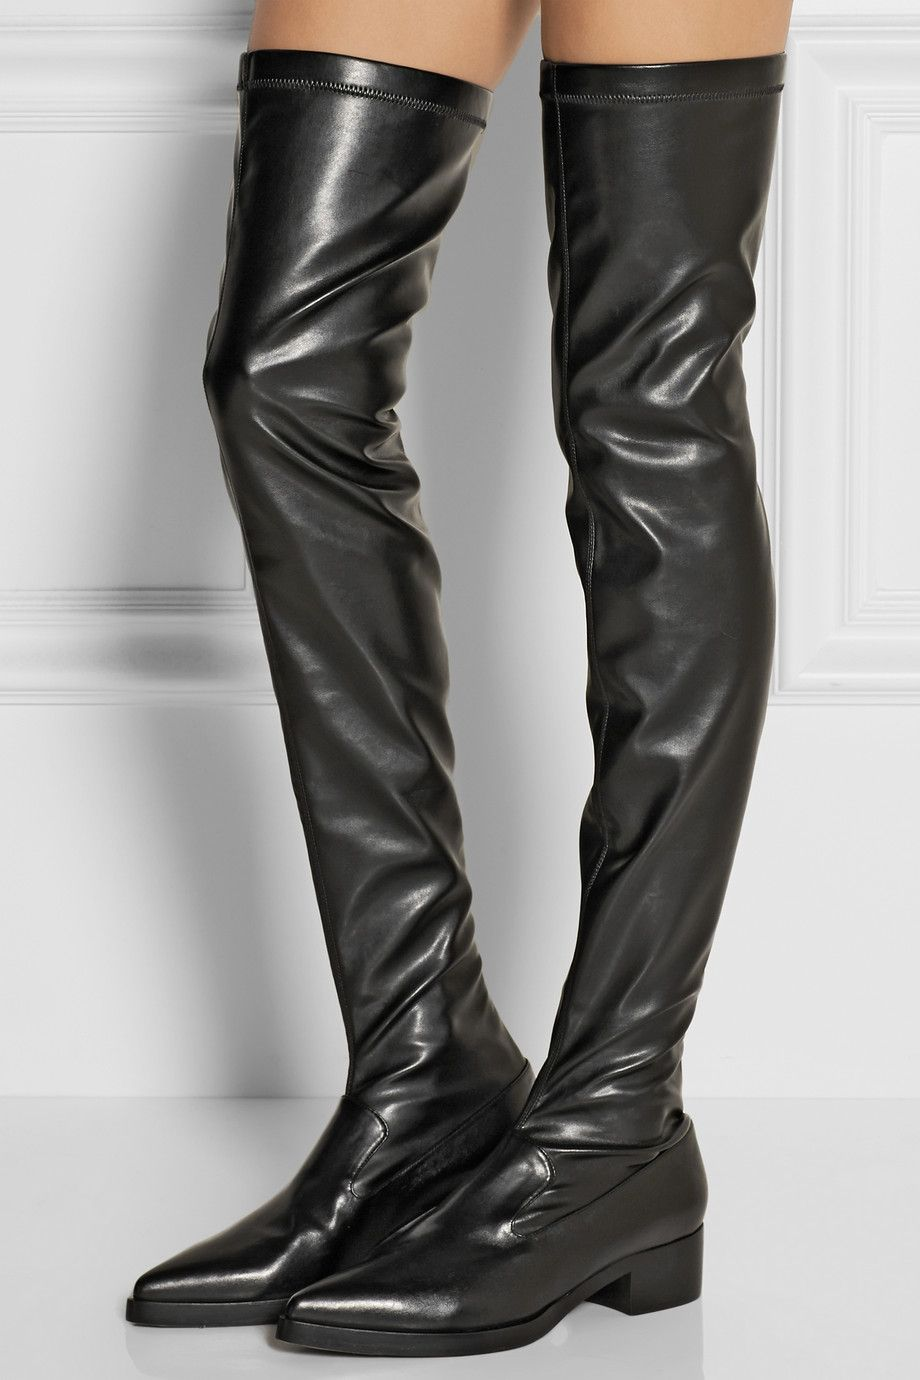 Stella McCartney Vegan Thigh-High Boots free shipping big discount fast delivery cheap price best online cheap best place Bp0gNPNqa5